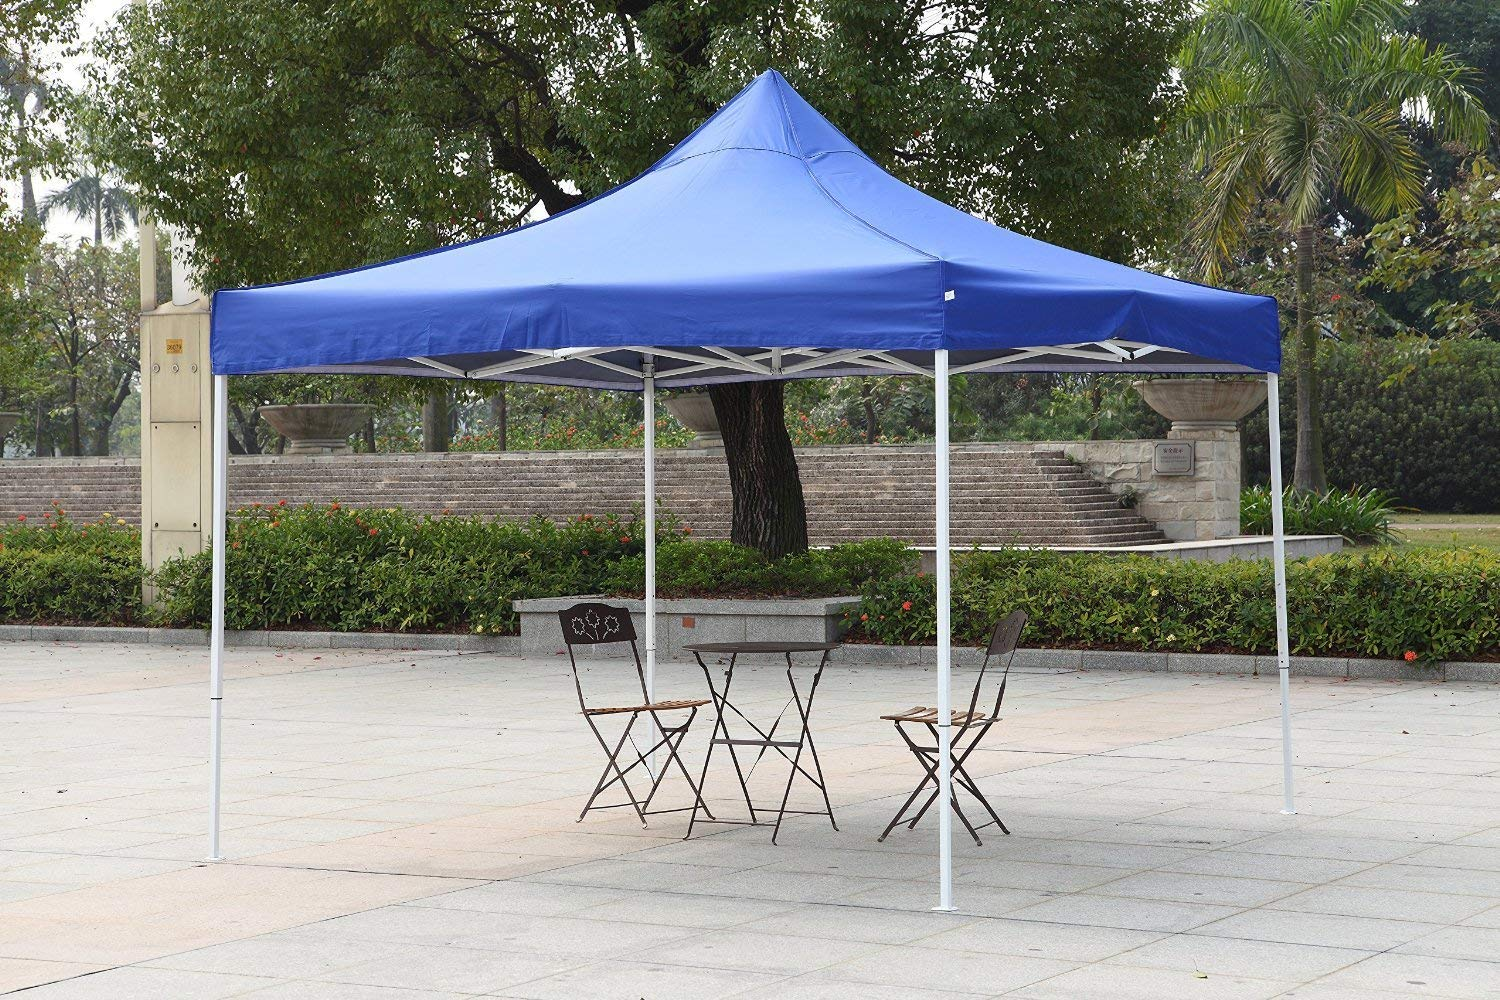 Amazon.com: Toldo desplegable instantáneo para ...